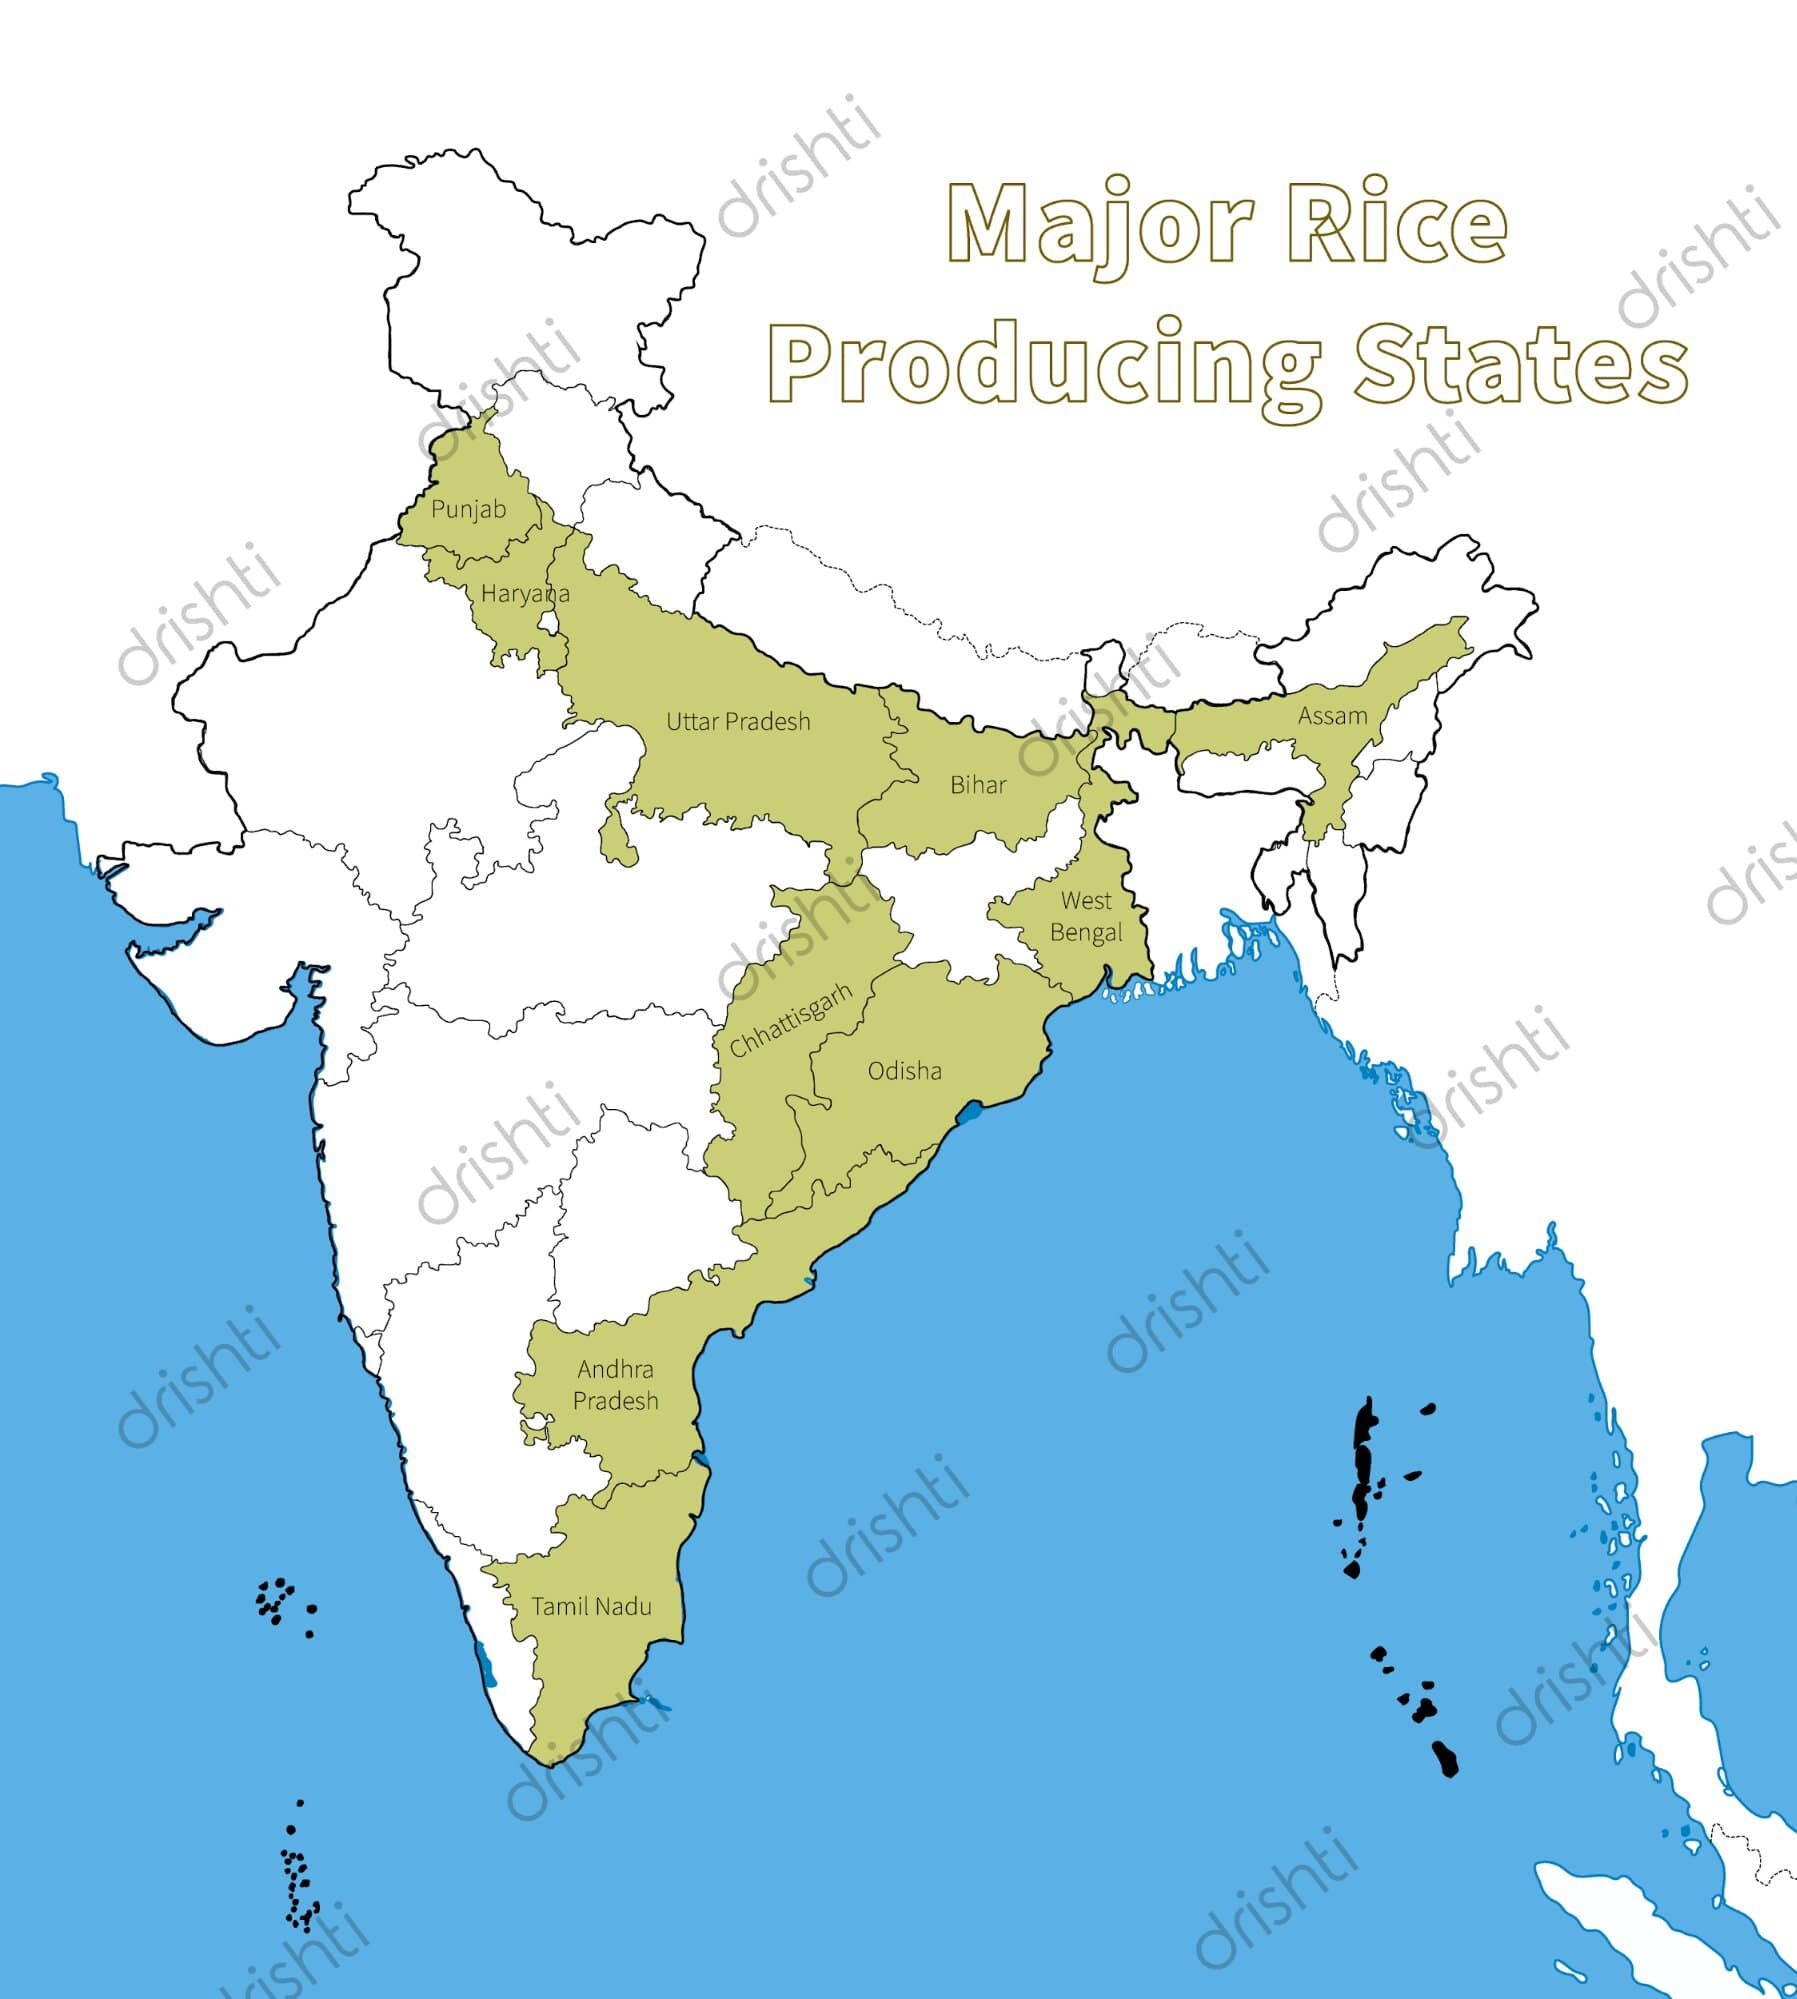 major crop agriculture map of india Cropping Patterns And Major Crops Of India Part One major crop agriculture map of india